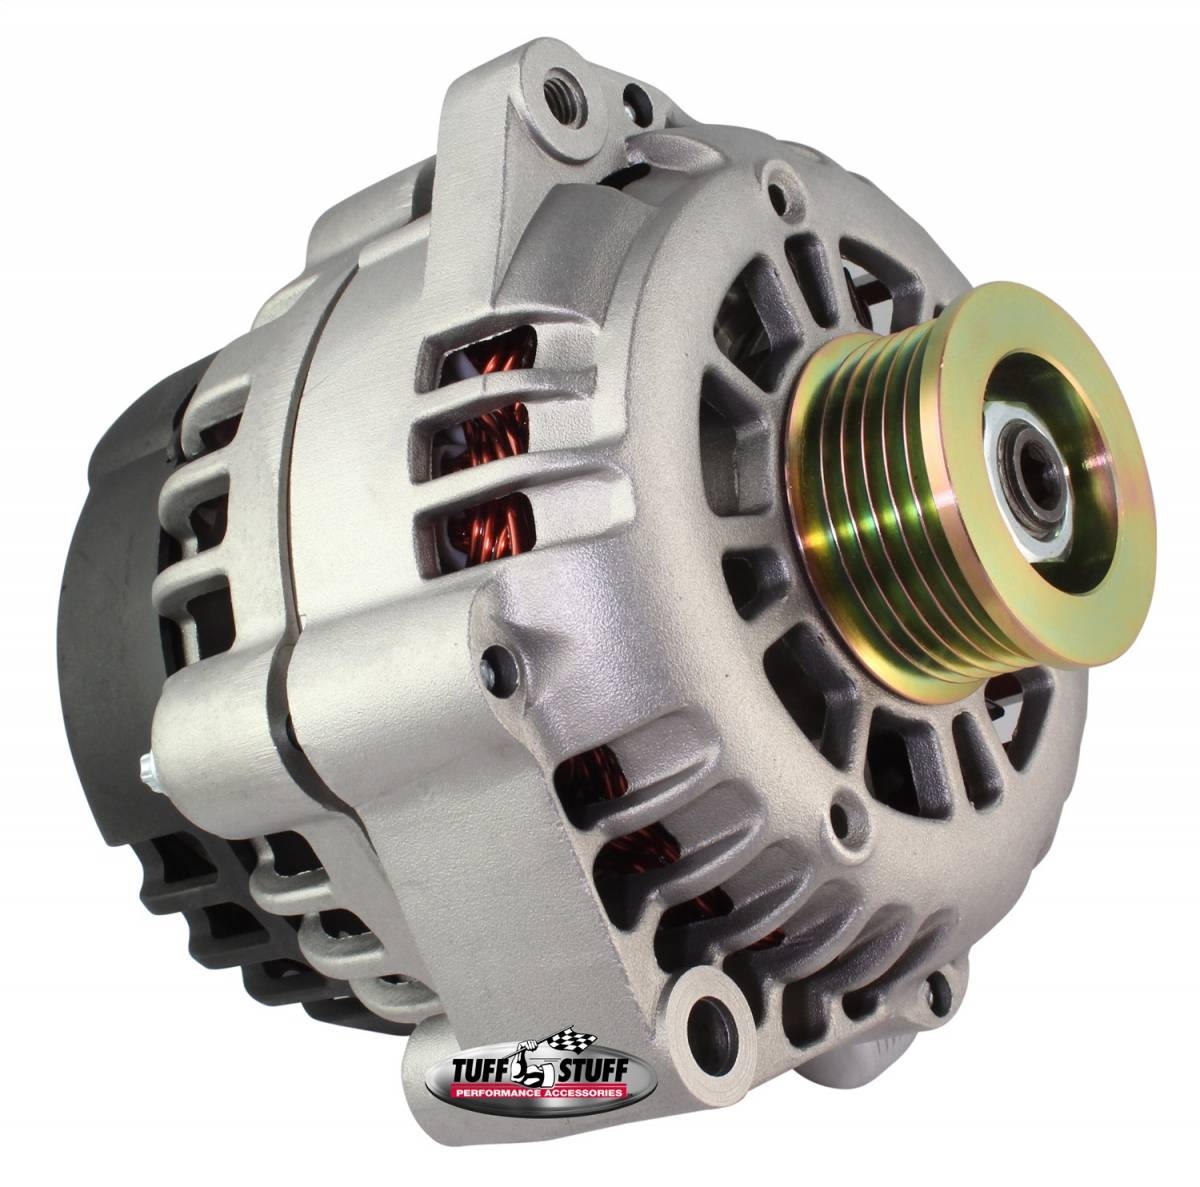 Tuff Stuff Performance - Alternator 175 AMP Upgrade Factory Cast PLUS+ 1-Wire Hookup Back Post 6 Groove Pulley 8233ND1